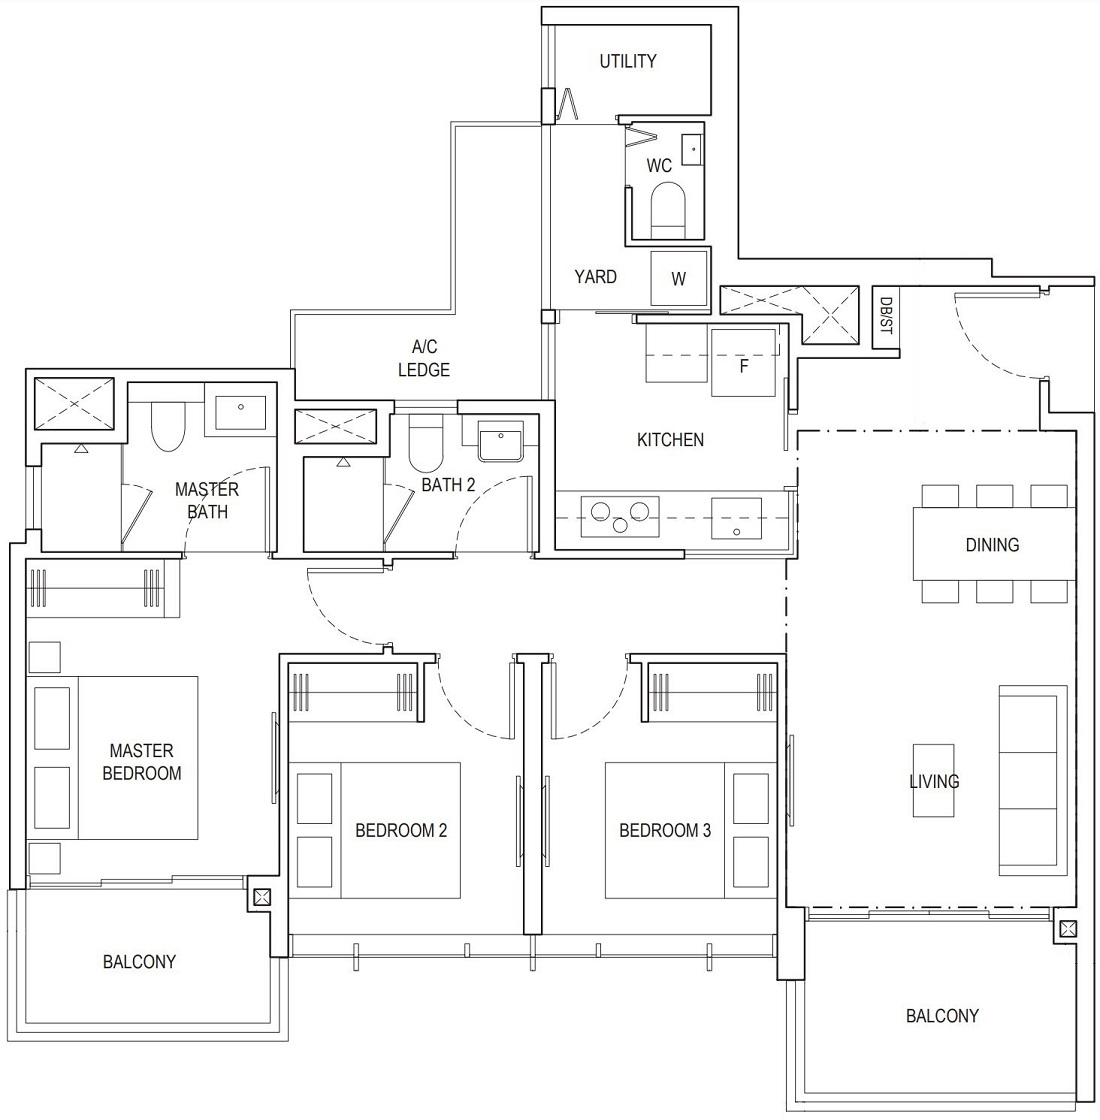 Piermont Grand EC 3 Bedroom Premium Floor Plan Type A4c 98 Sqm / 1055 Sqft